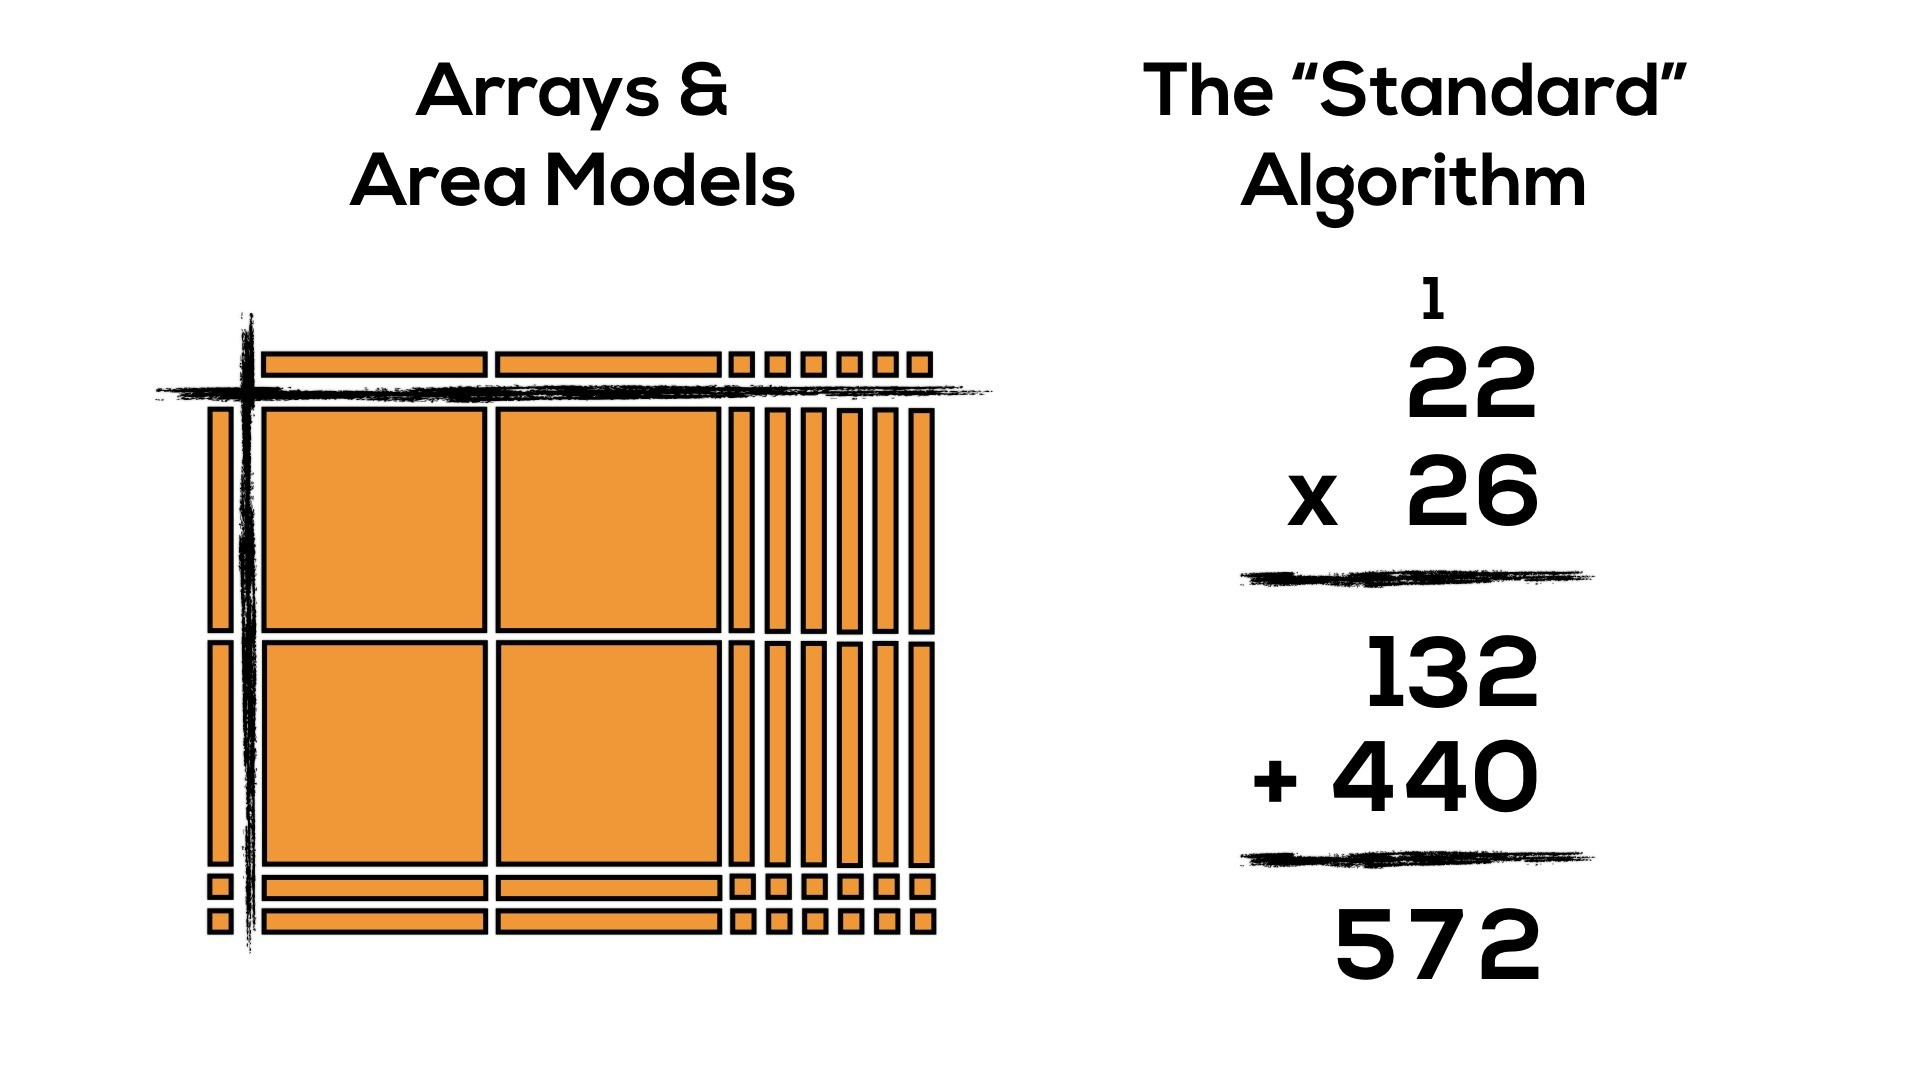 Progression of Multiplication - Comparing Area Model and Standard Algorithm for 22 x 26